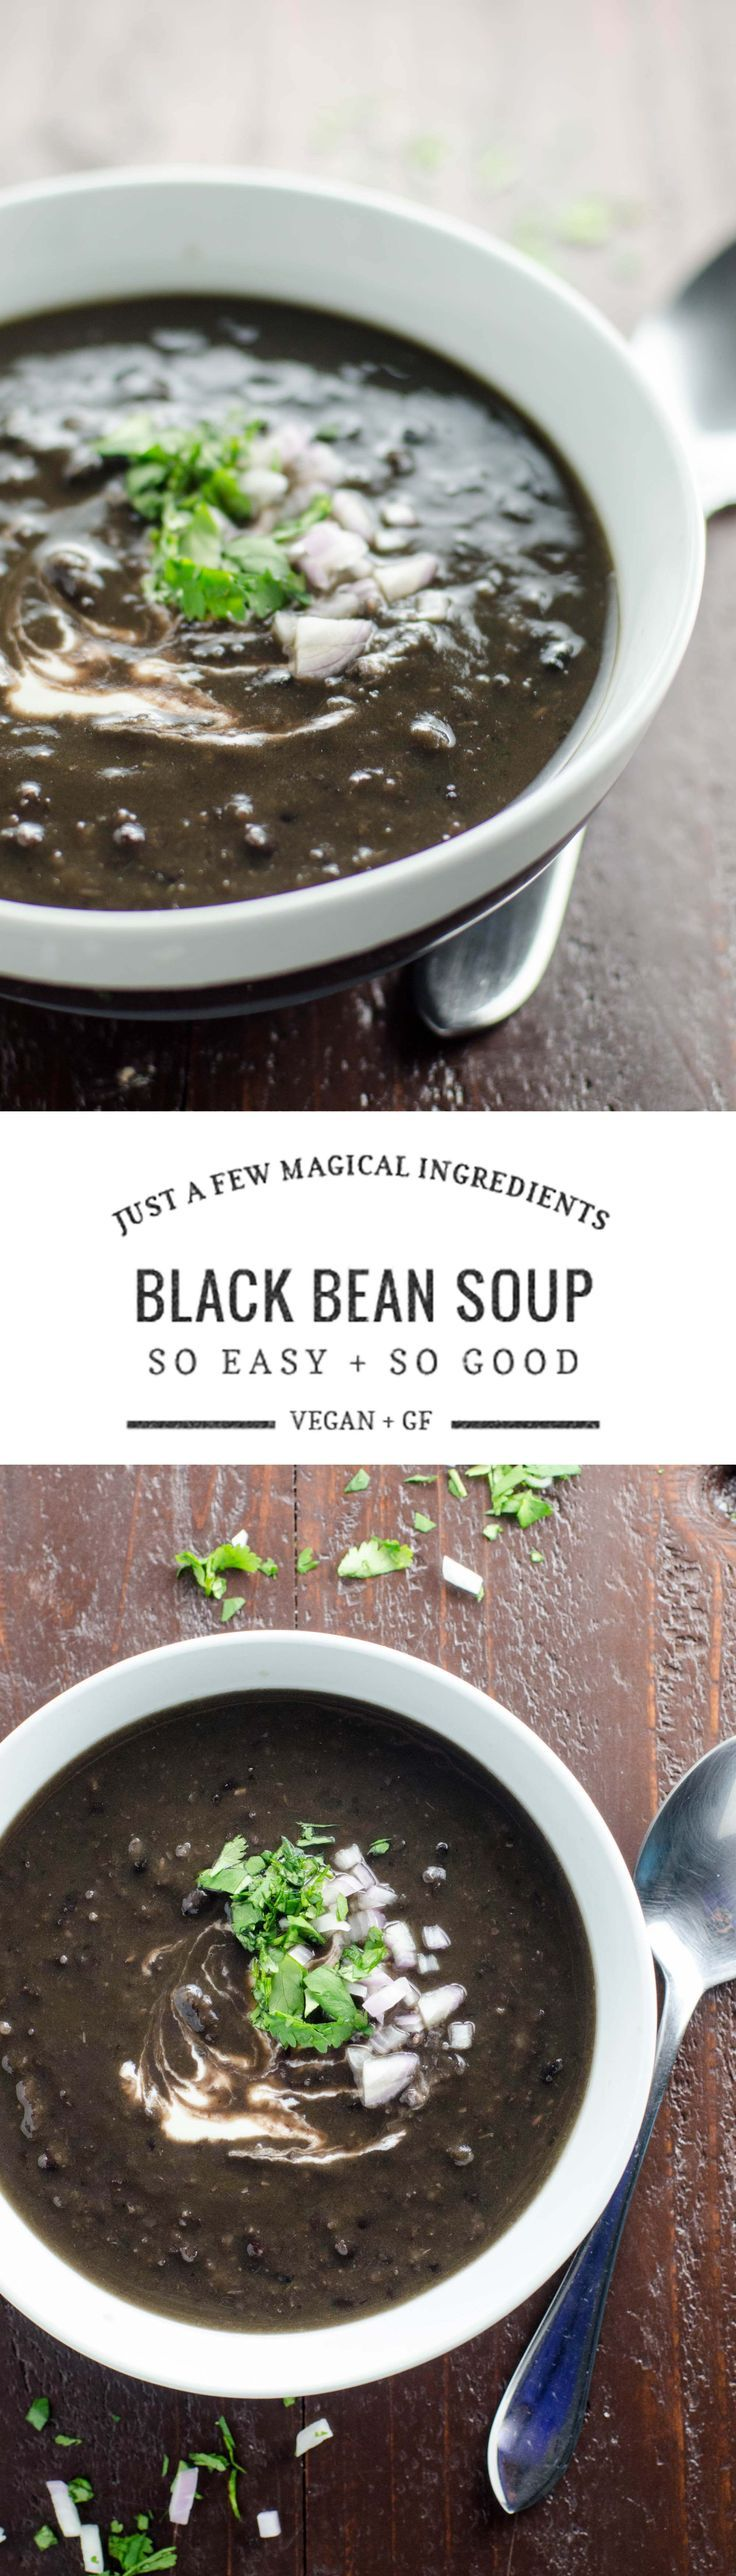 This absurdly simple, crazy-delicious vegan black bean soup recipe is like stone soup -- you'll wonder how it got so good.